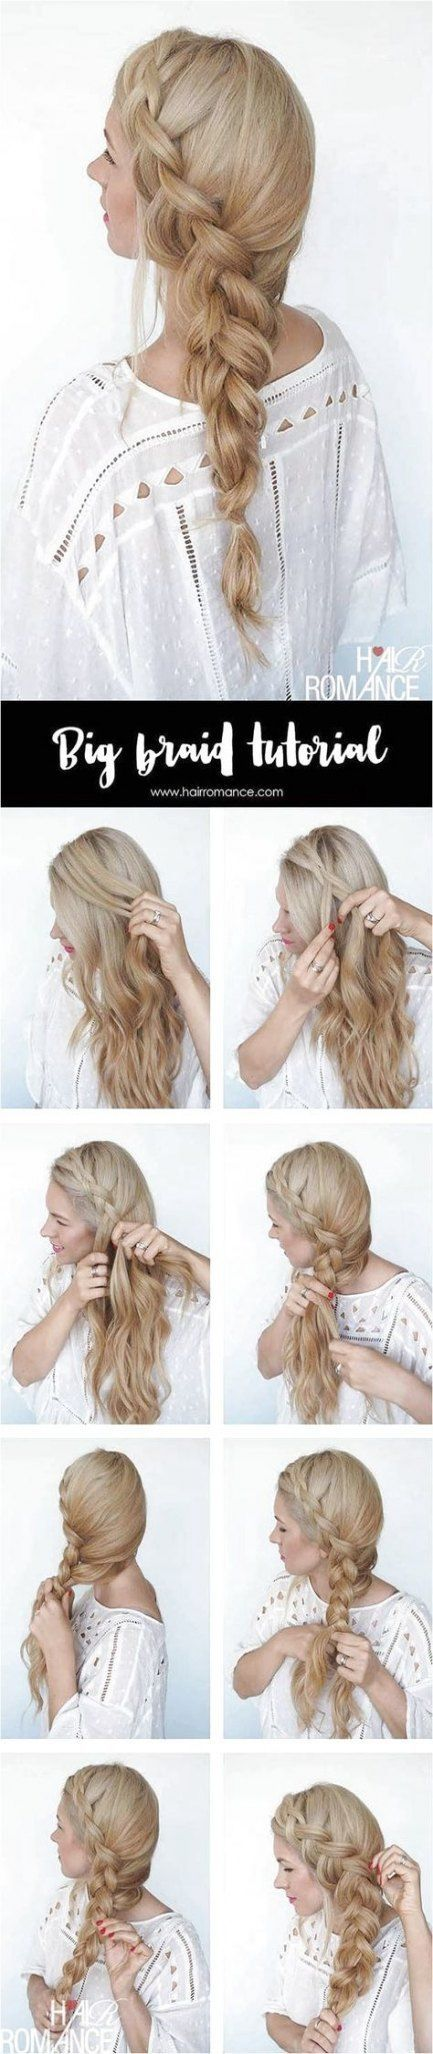 54+ New Ideas For Hairstyles For School Boho Hair Tutorials